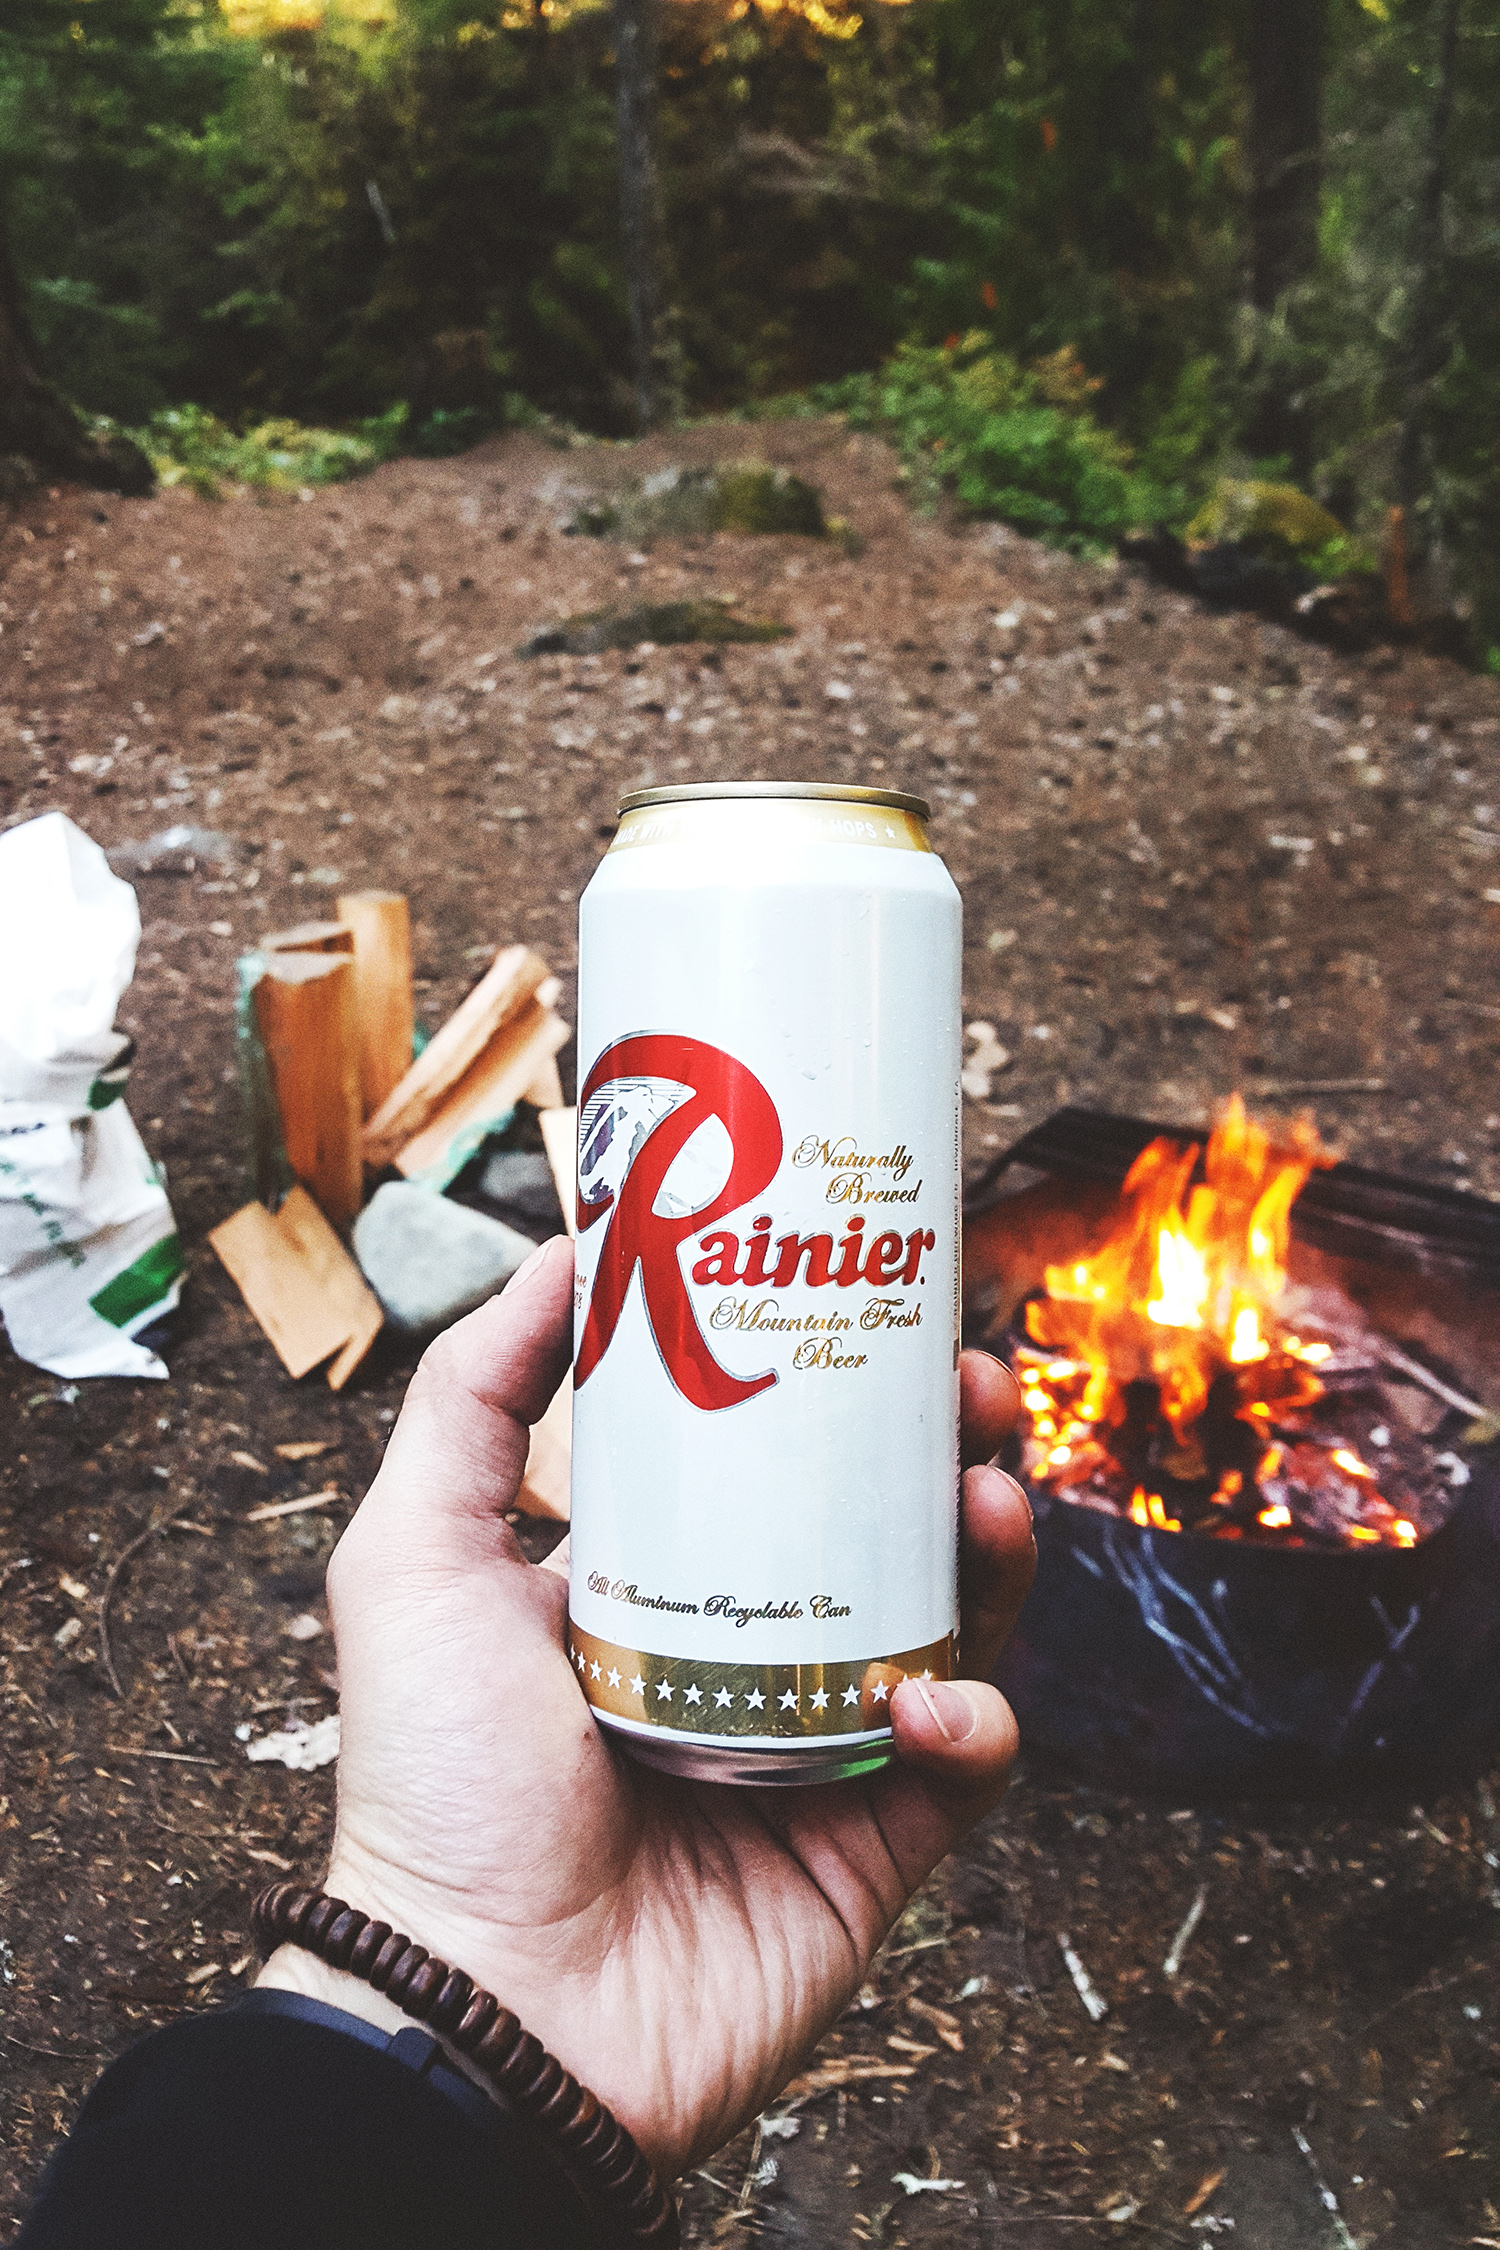 Rainier Beer. Made in California??